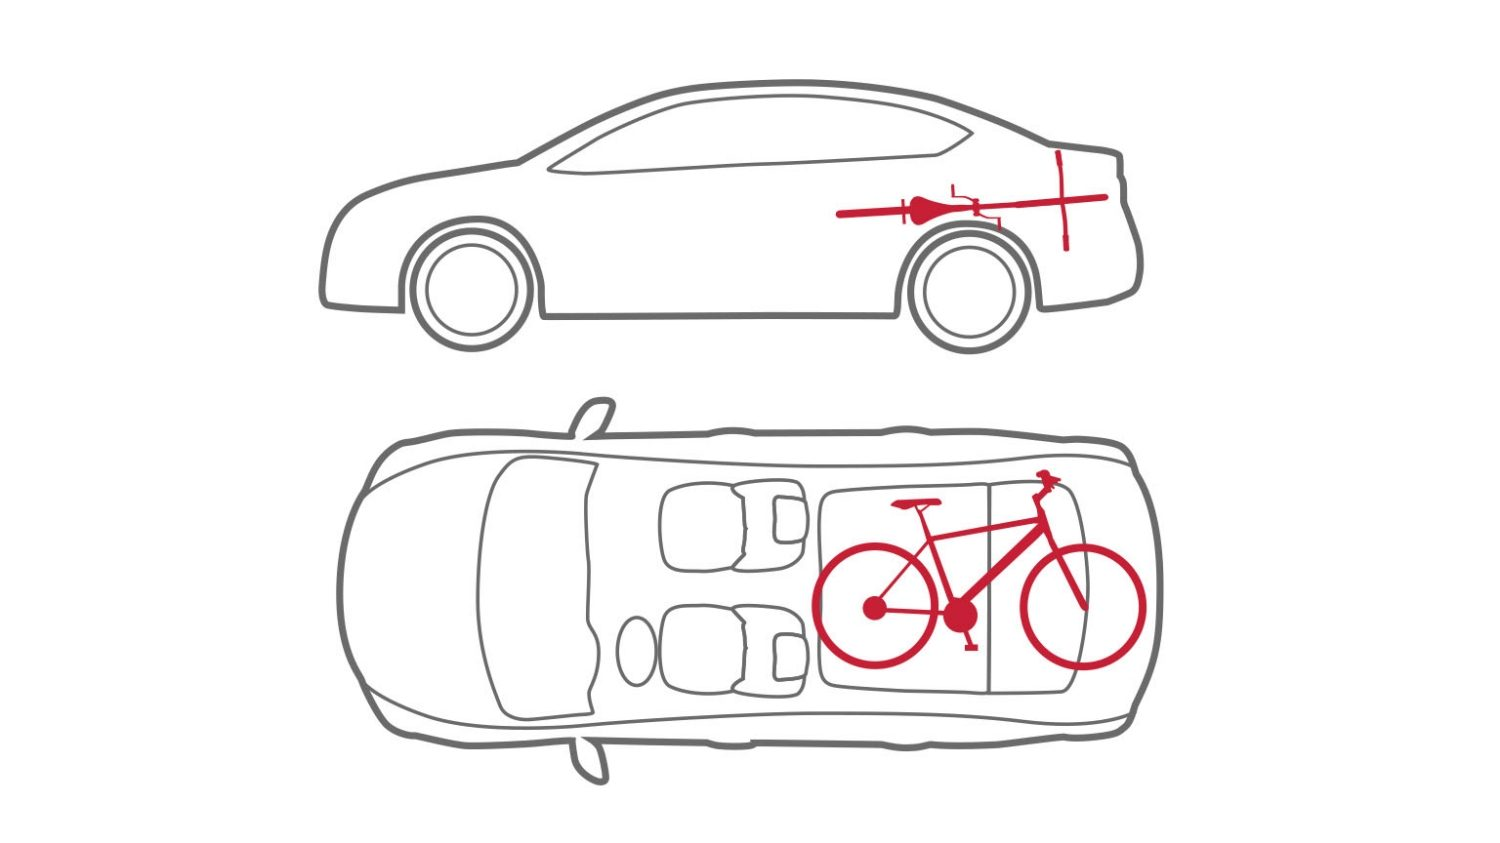 Animation of car with bike in trunk